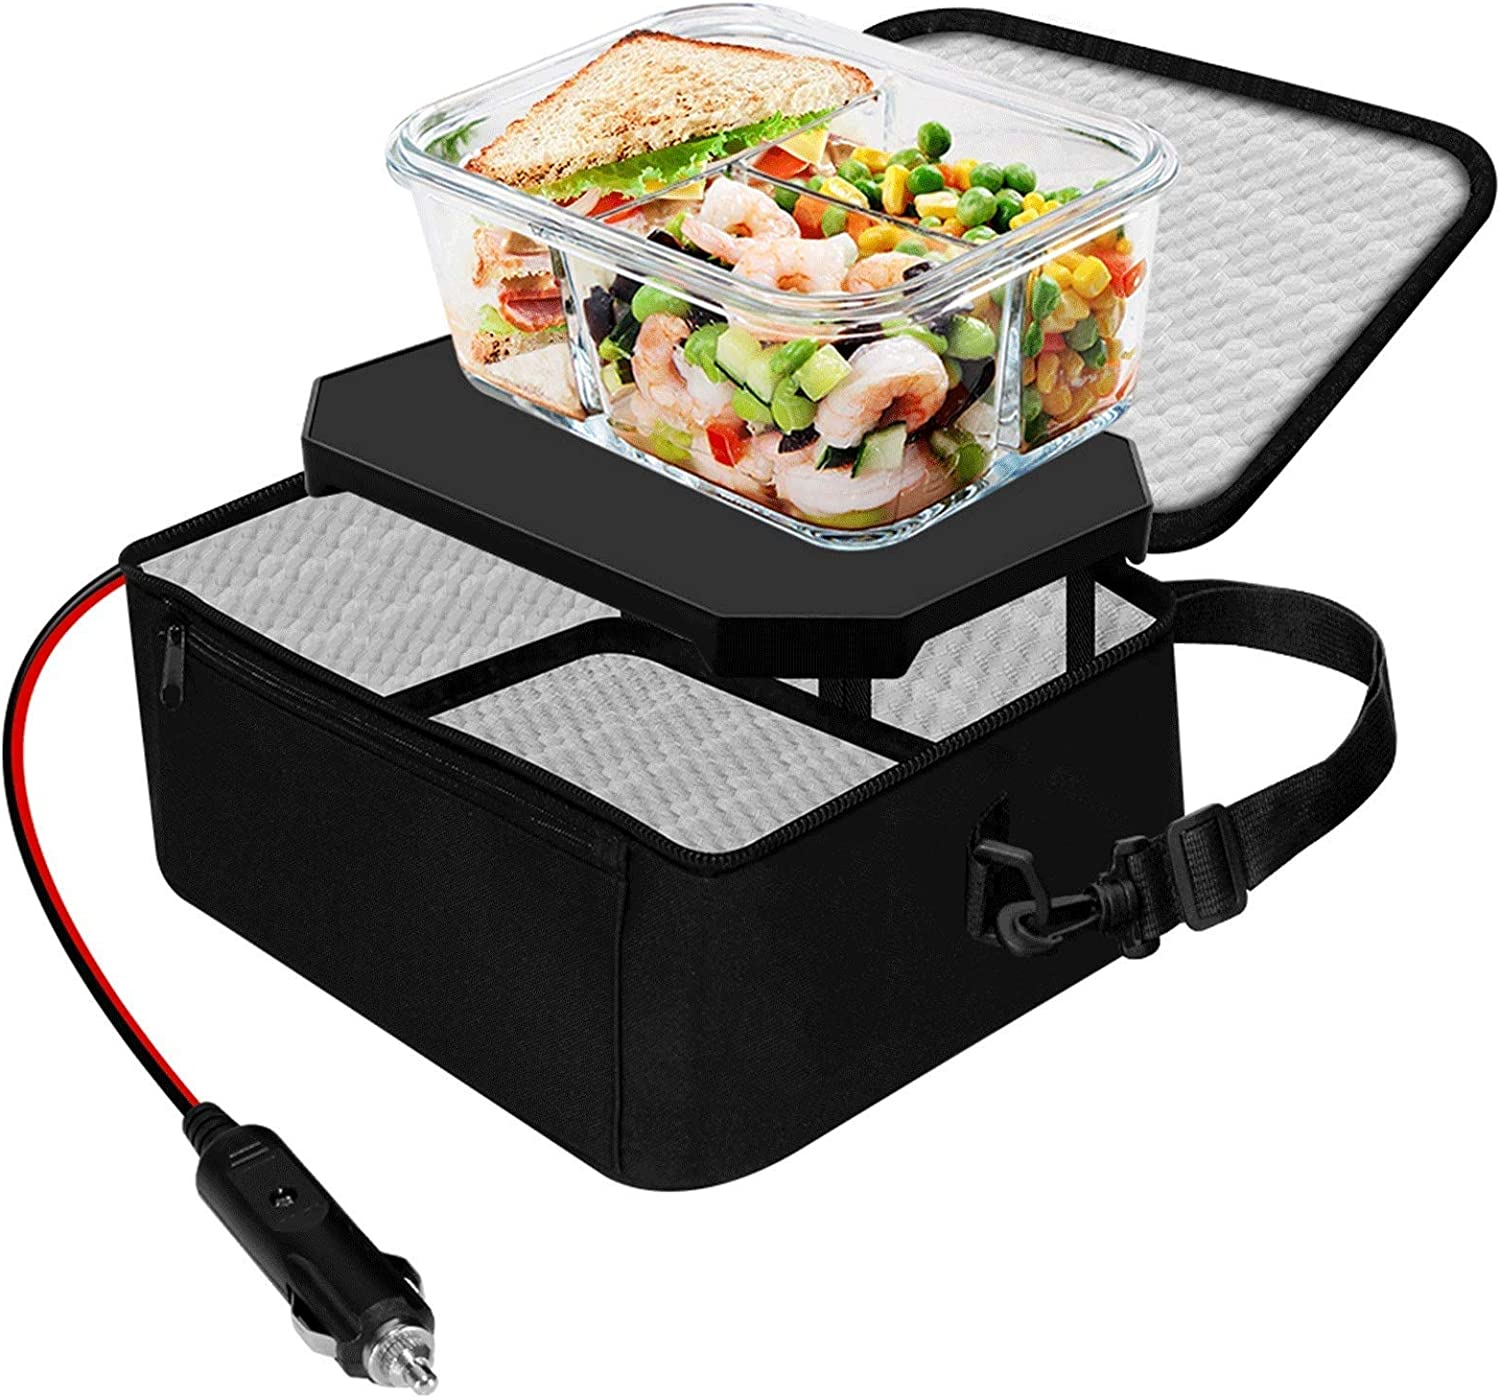 TrianglePatt Portable Oven,12V Food Warmer for Car Portable Mini Microwave for heated Meals,Upgrade Personal Lunch Warmer Box with Bag for Travel, Camping,Outdoor Job, and Potlucks